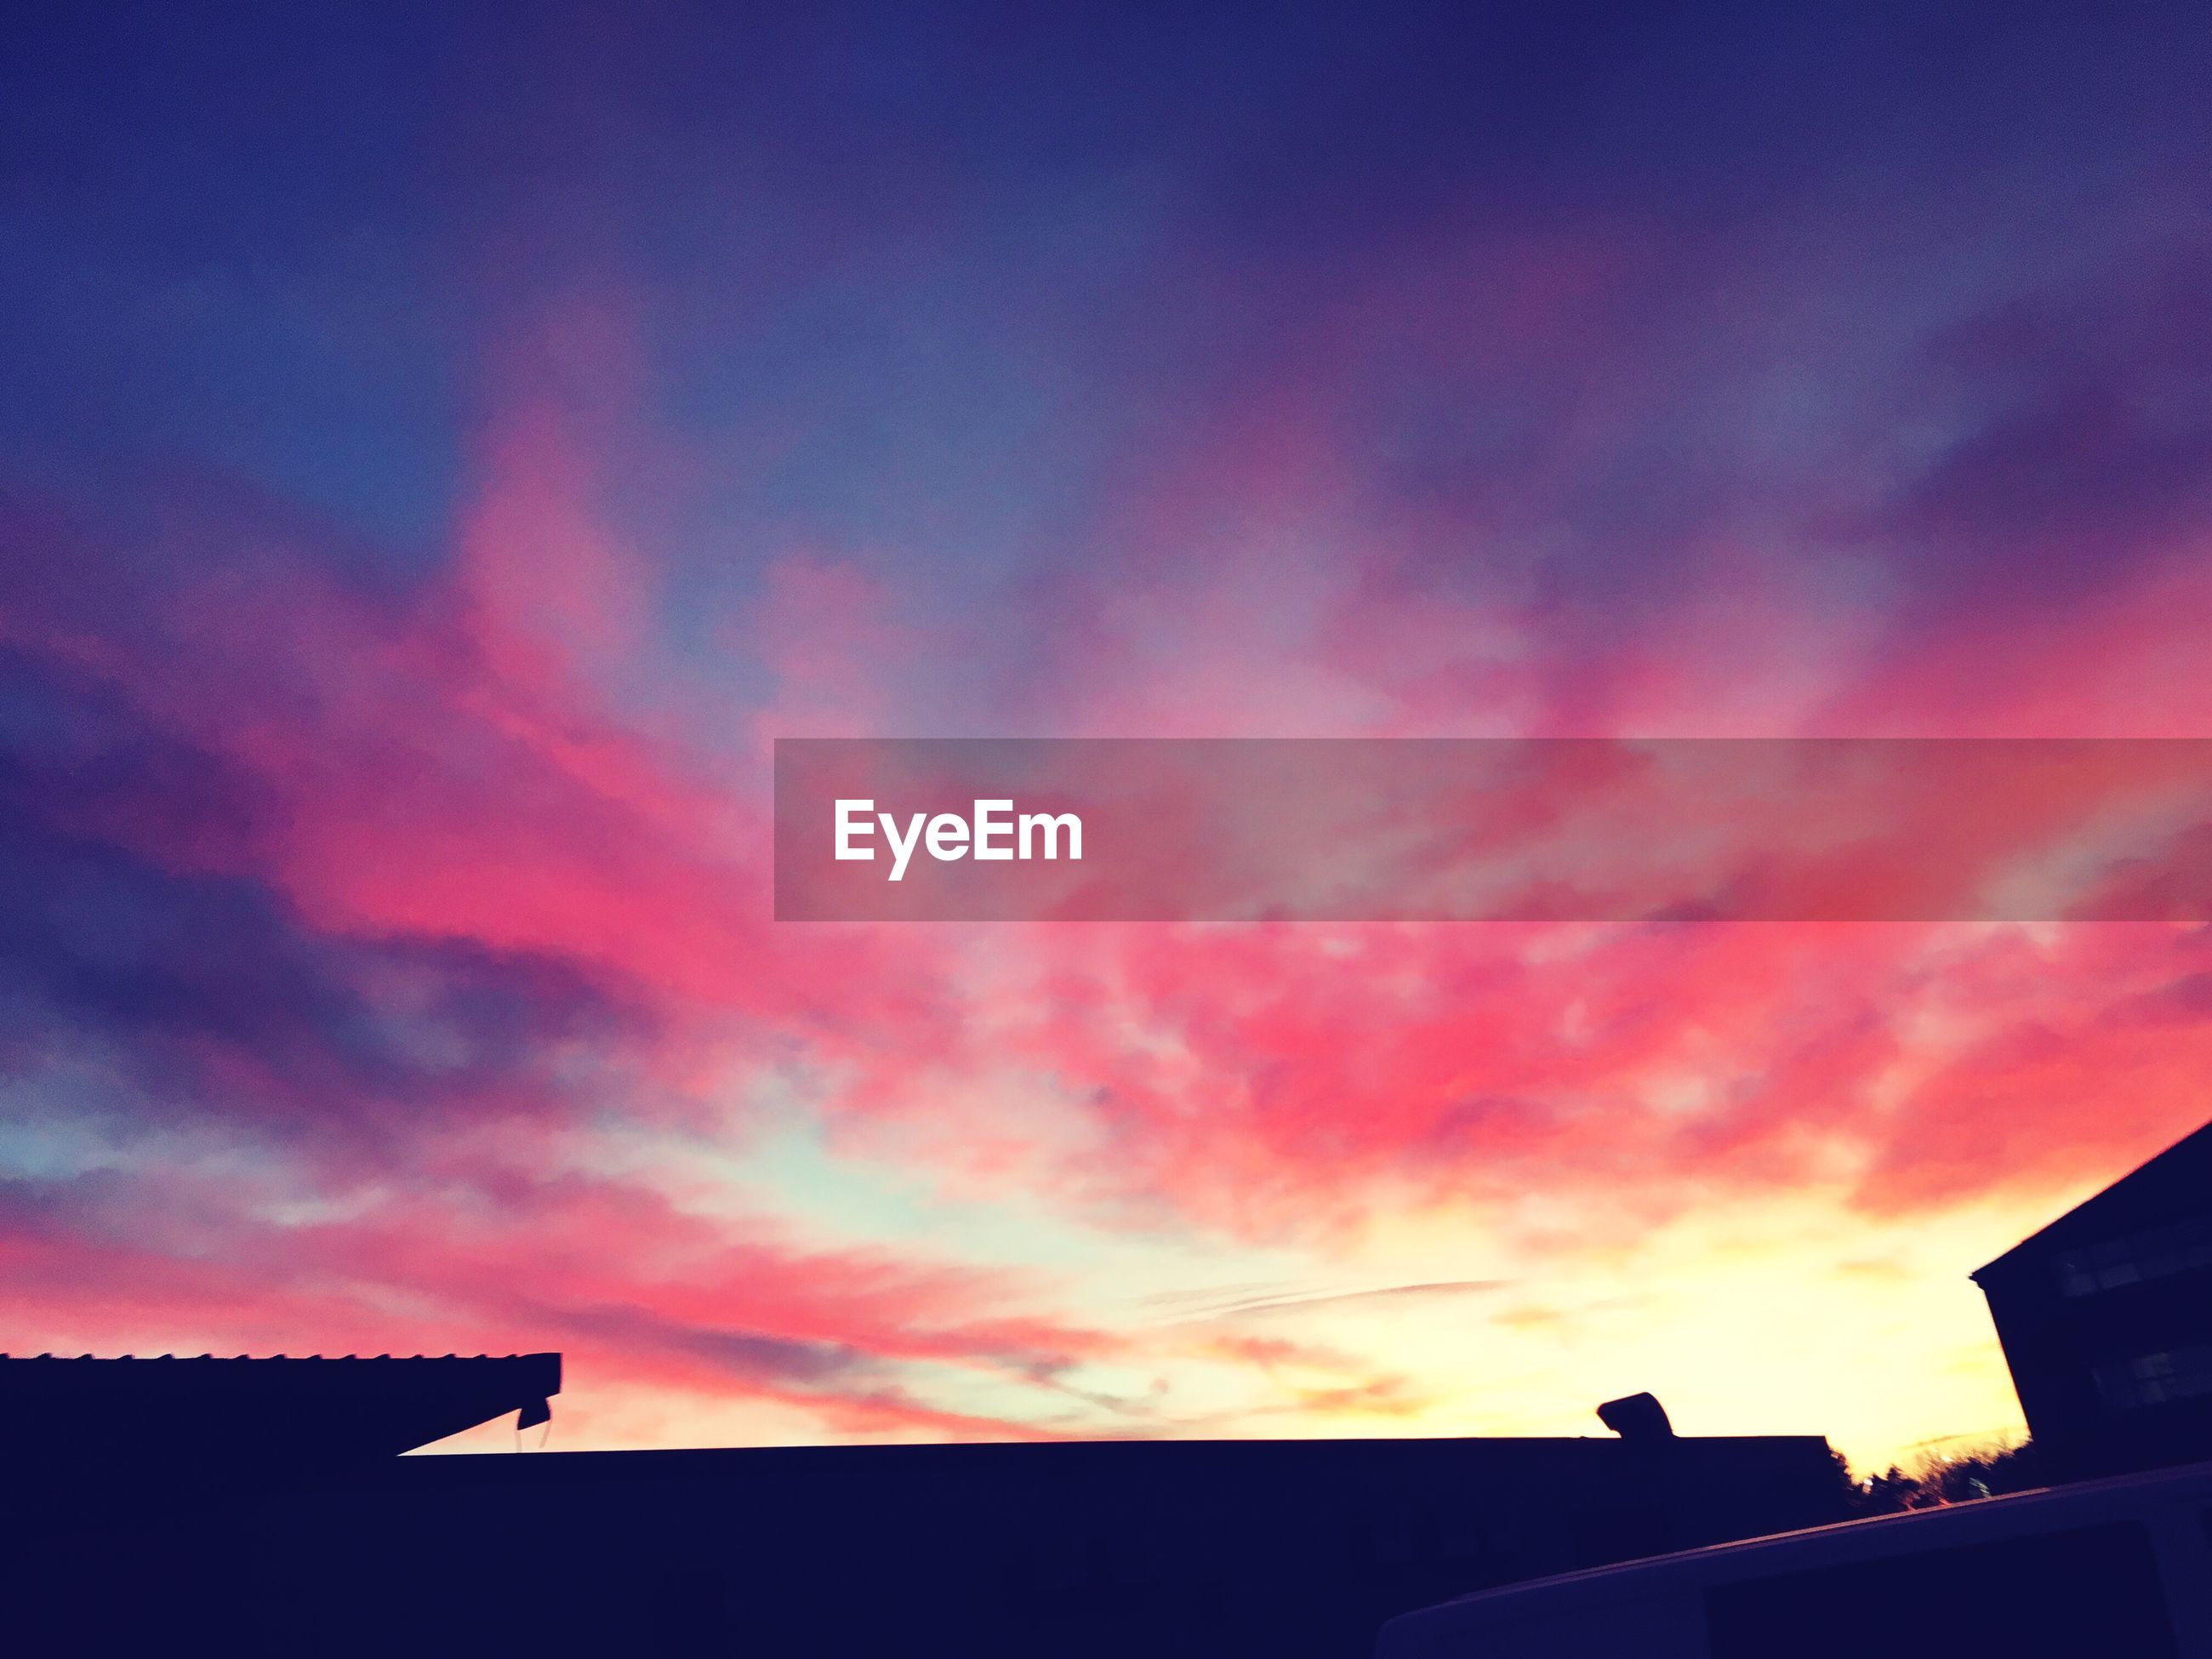 sunset, sky, silhouette, cloud - sky, nature, no people, outdoors, architecture, day